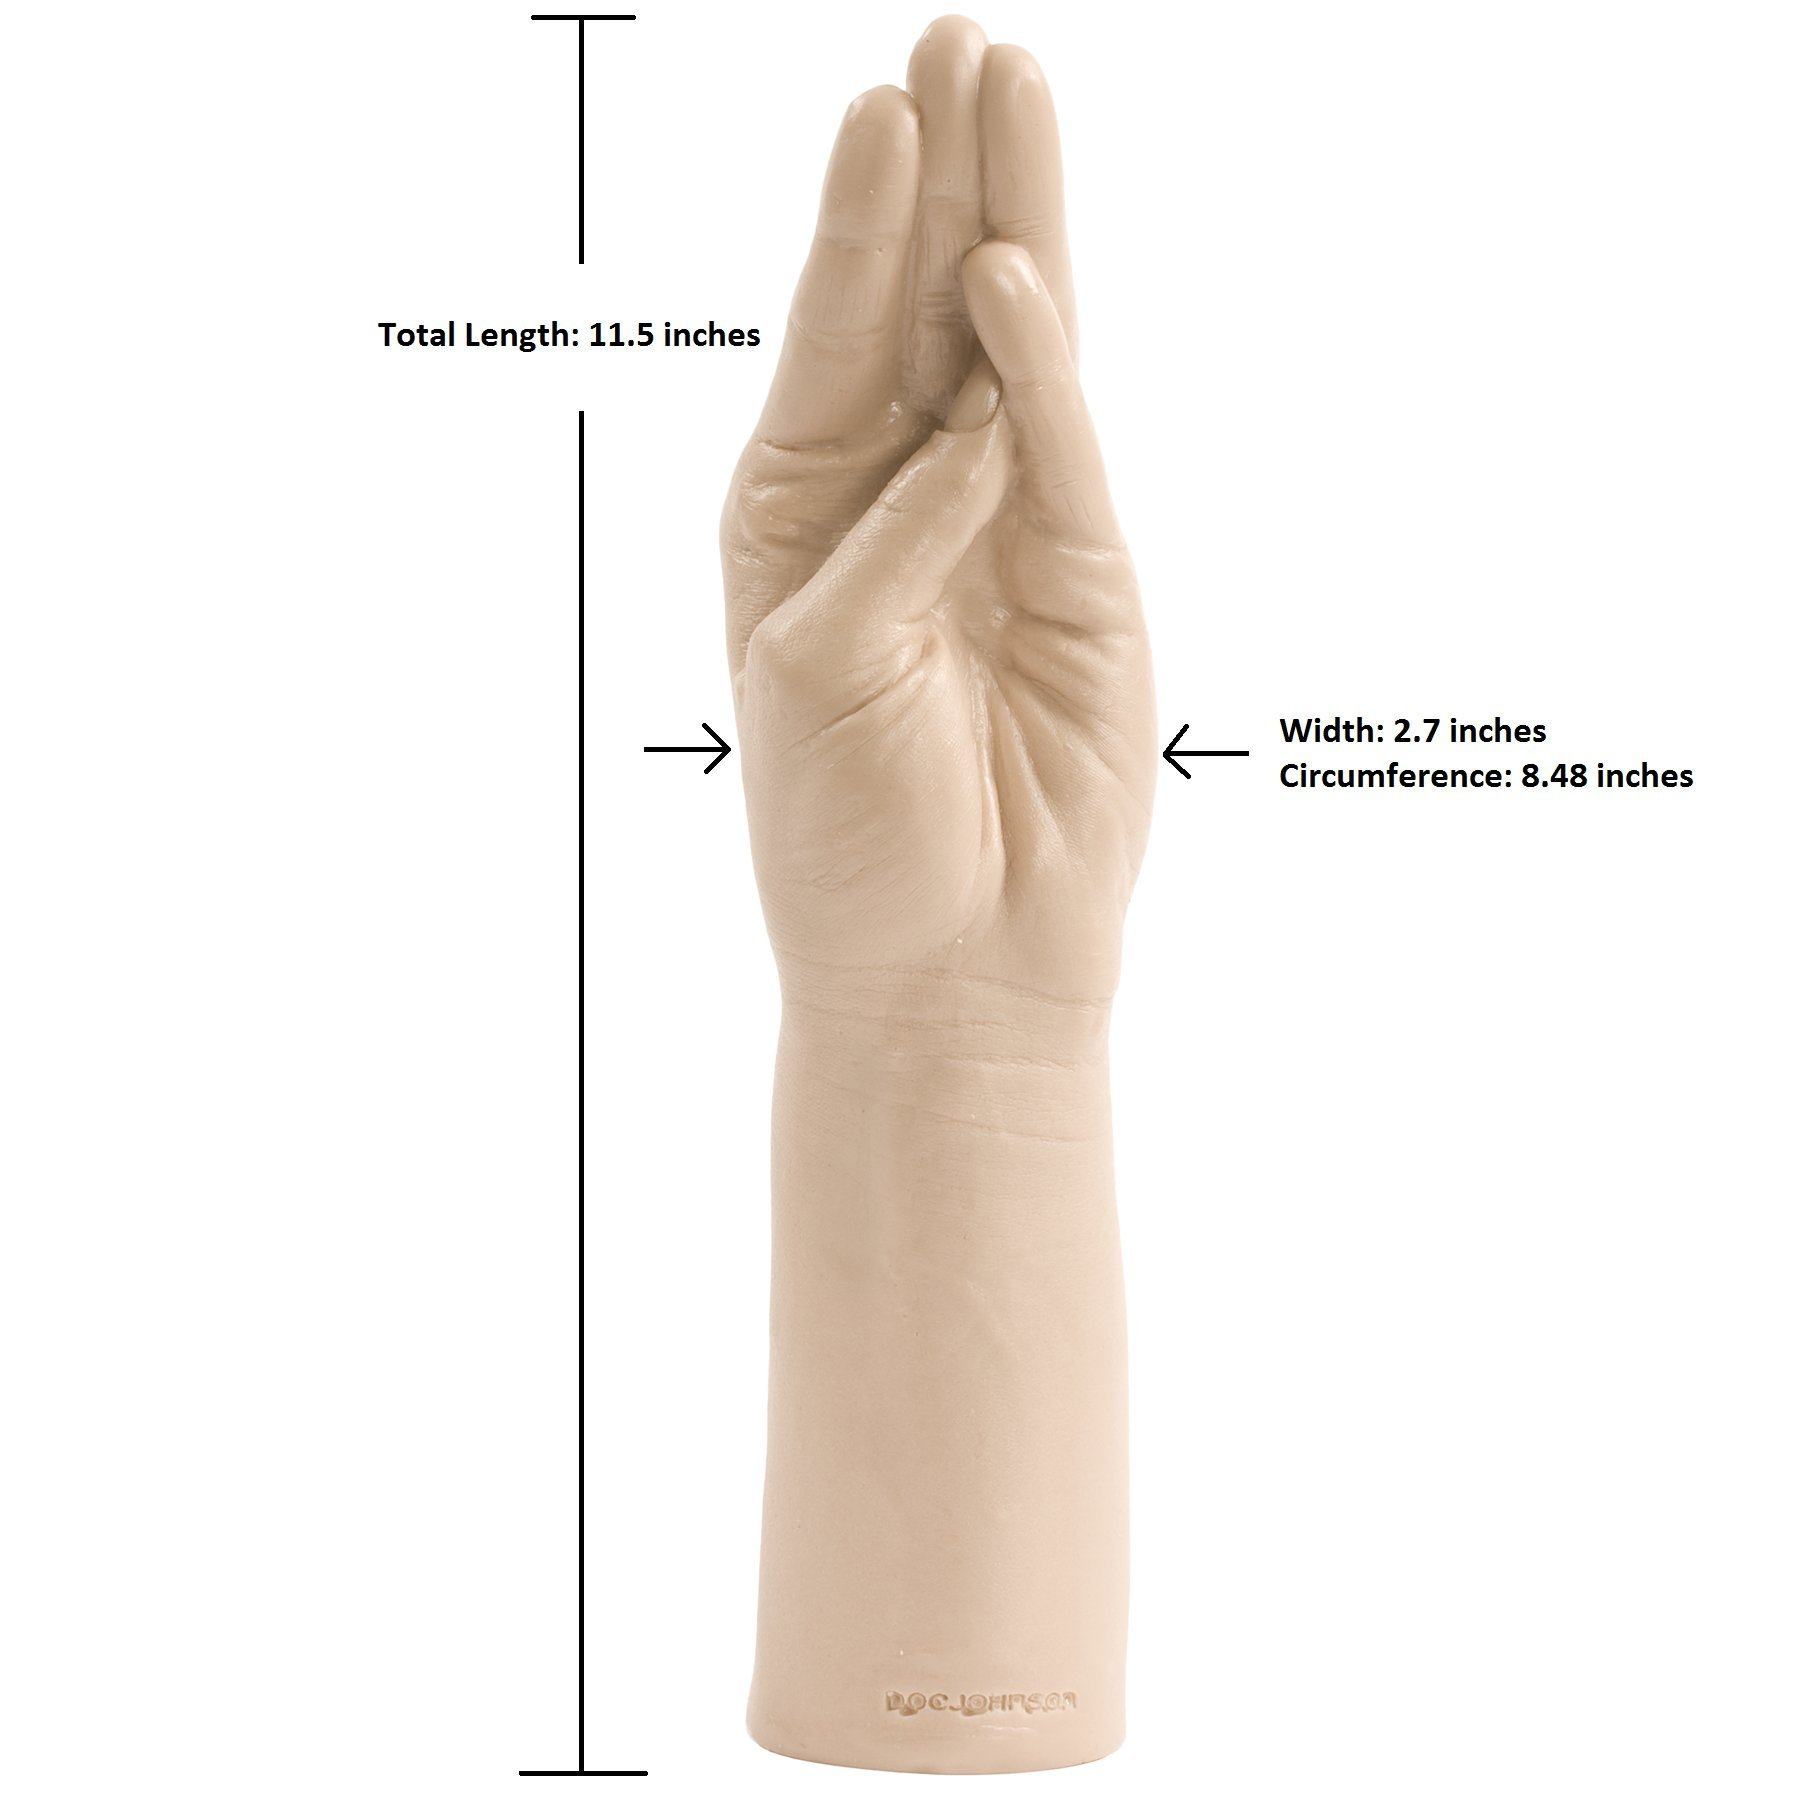 Doc Johnson Belladonna - Magic Hand - 11.5 Inch Hand and Forearm - For Vaginal or Anal Fisting - White by Doc Johnson